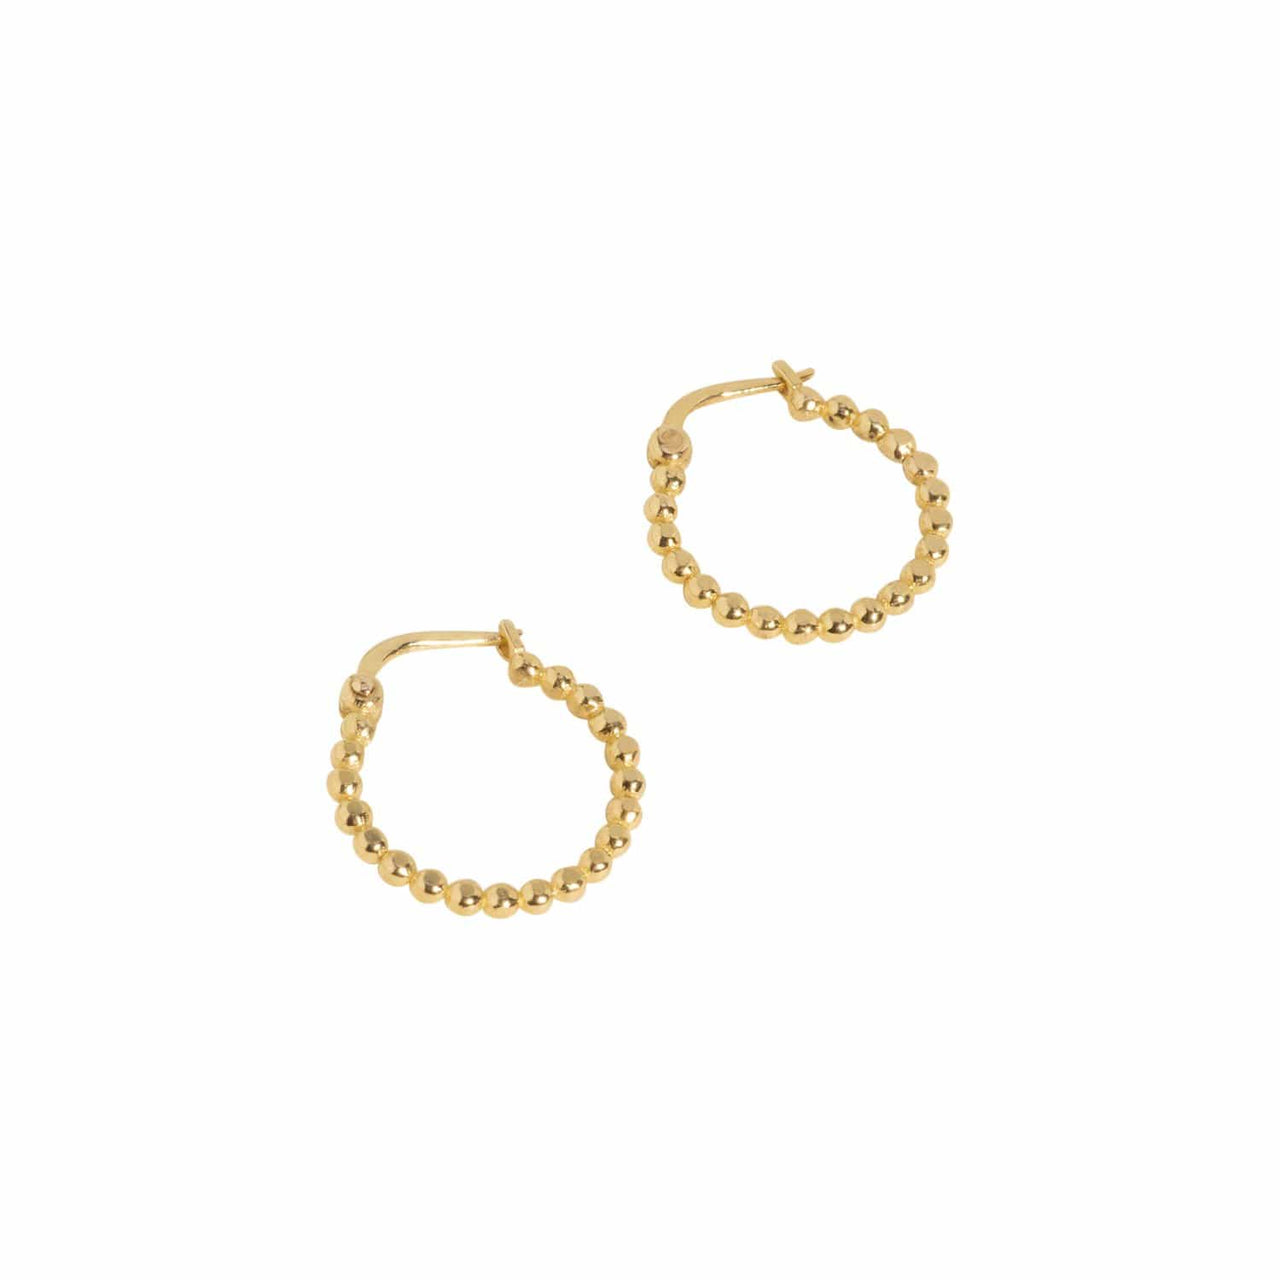 Haati Chai Earrings Carmen Hoops